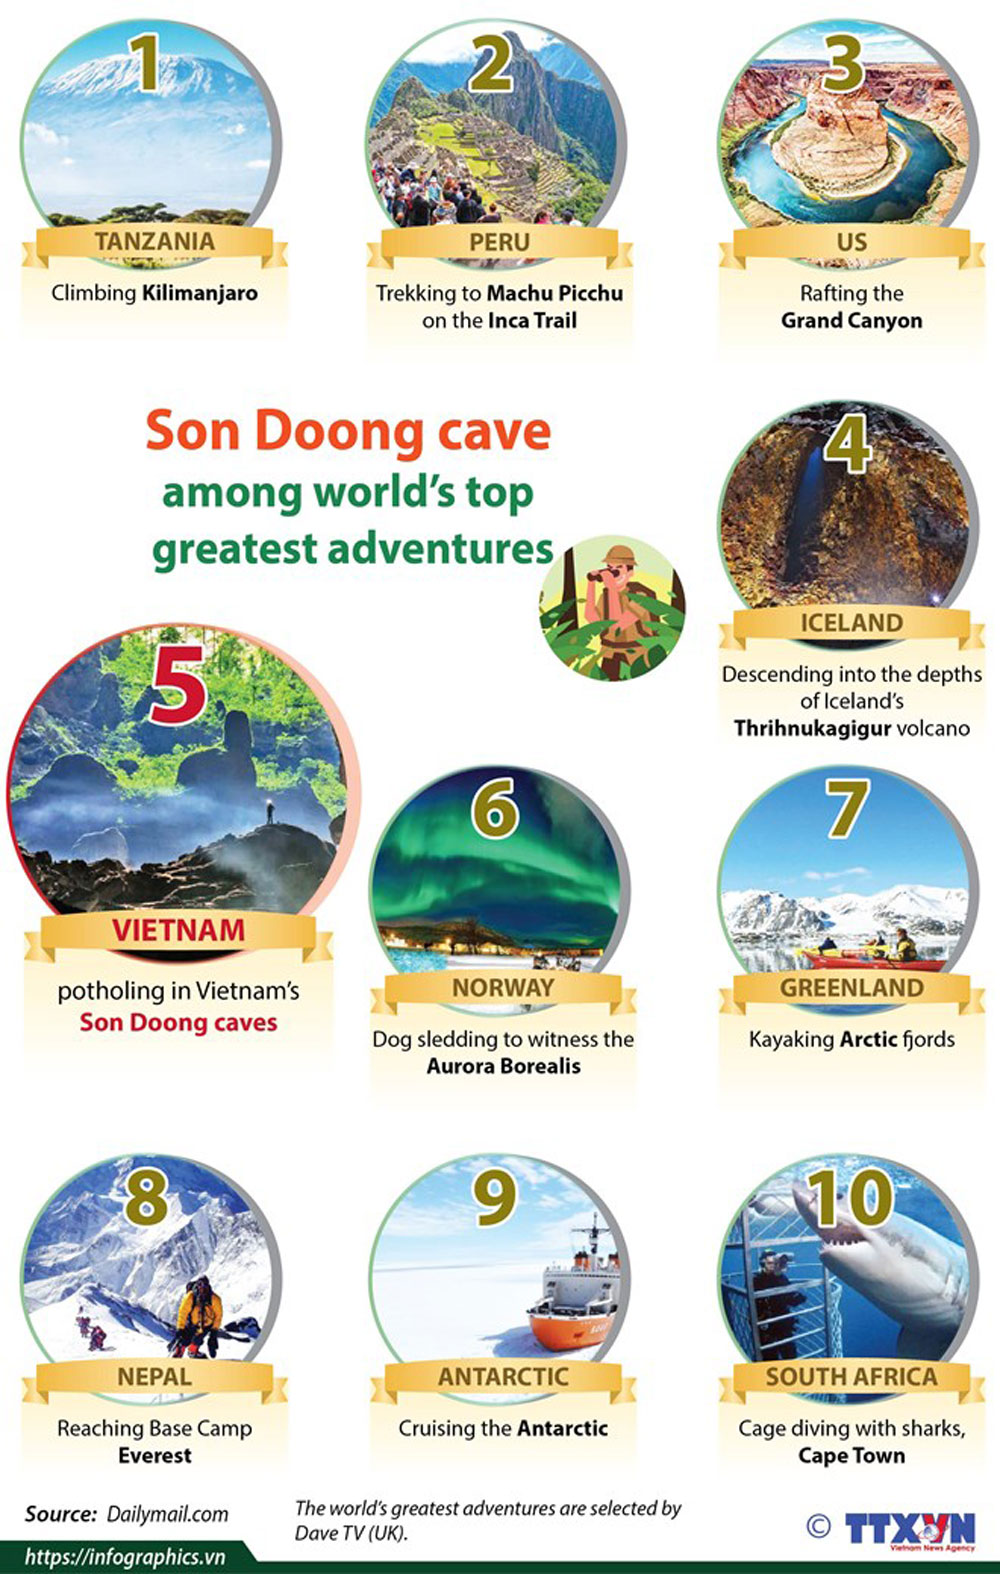 Son Doong cave, world's top greatest adventures, largest cave system, famous destination